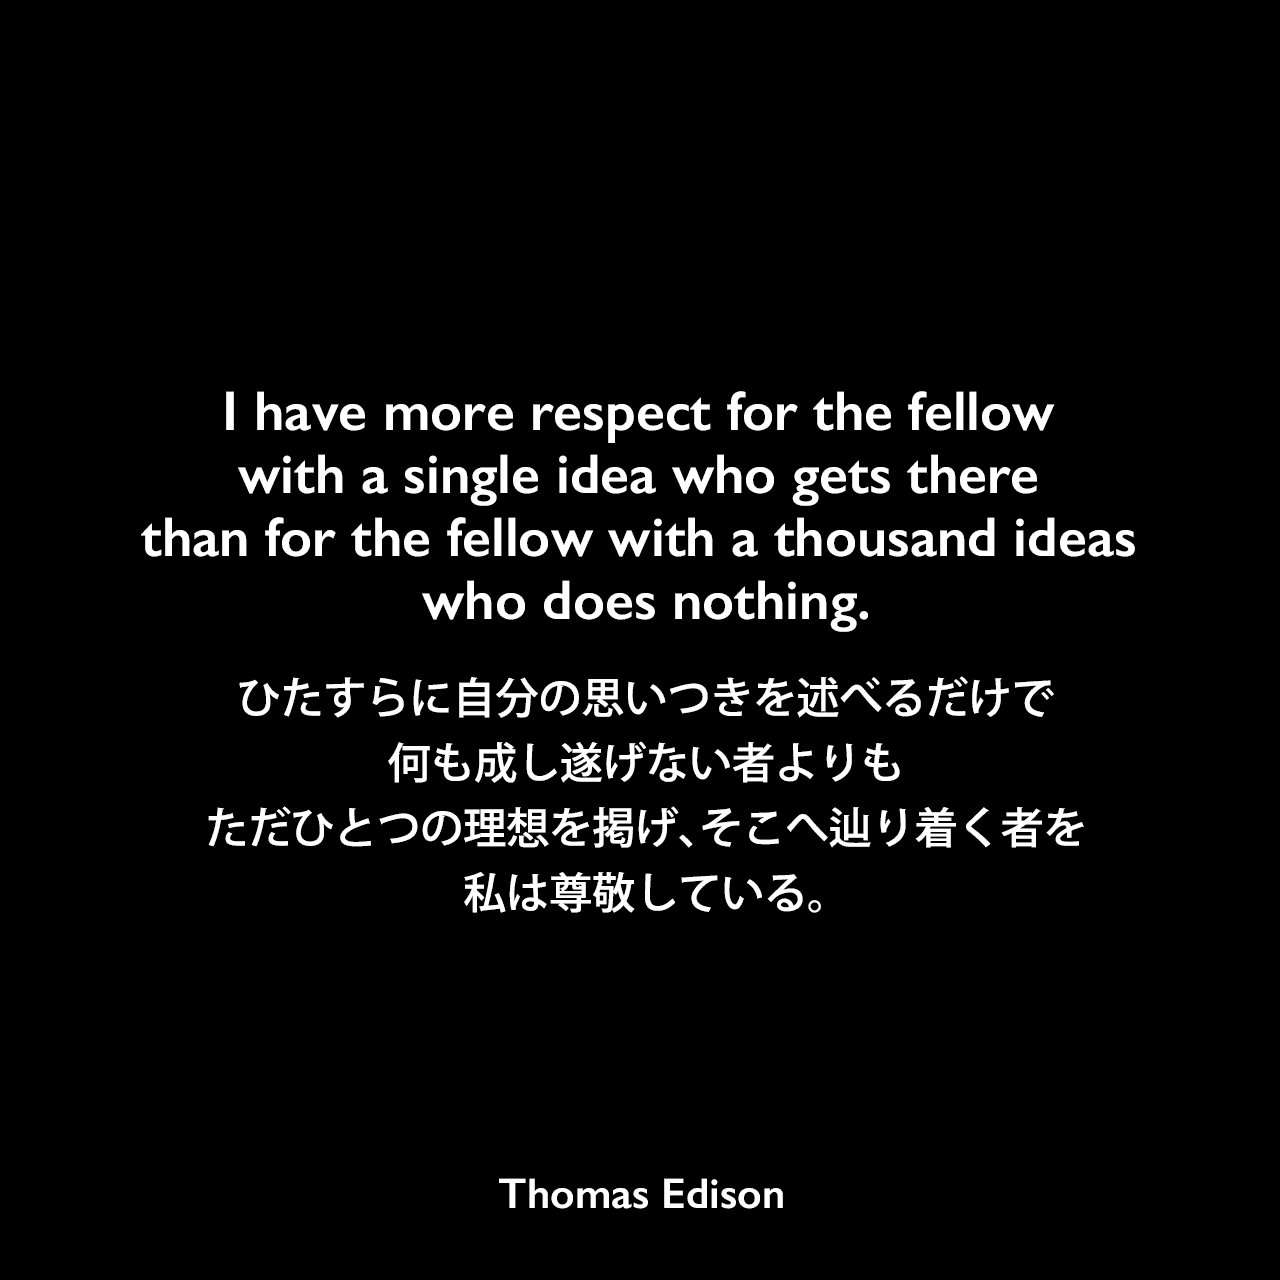 I have more respect for the fellow with a single idea who gets there than for the fellow with a thousand ideas who does nothing.ひたすらに自分の思いつきを述べるだけで、何も成し遂げない者よりも、ただひとつの理想を掲げ、そこへ辿り着く者を私は尊敬している。- Edison Innovation Foundationよりエジソンの言葉として引用Thomas Edison